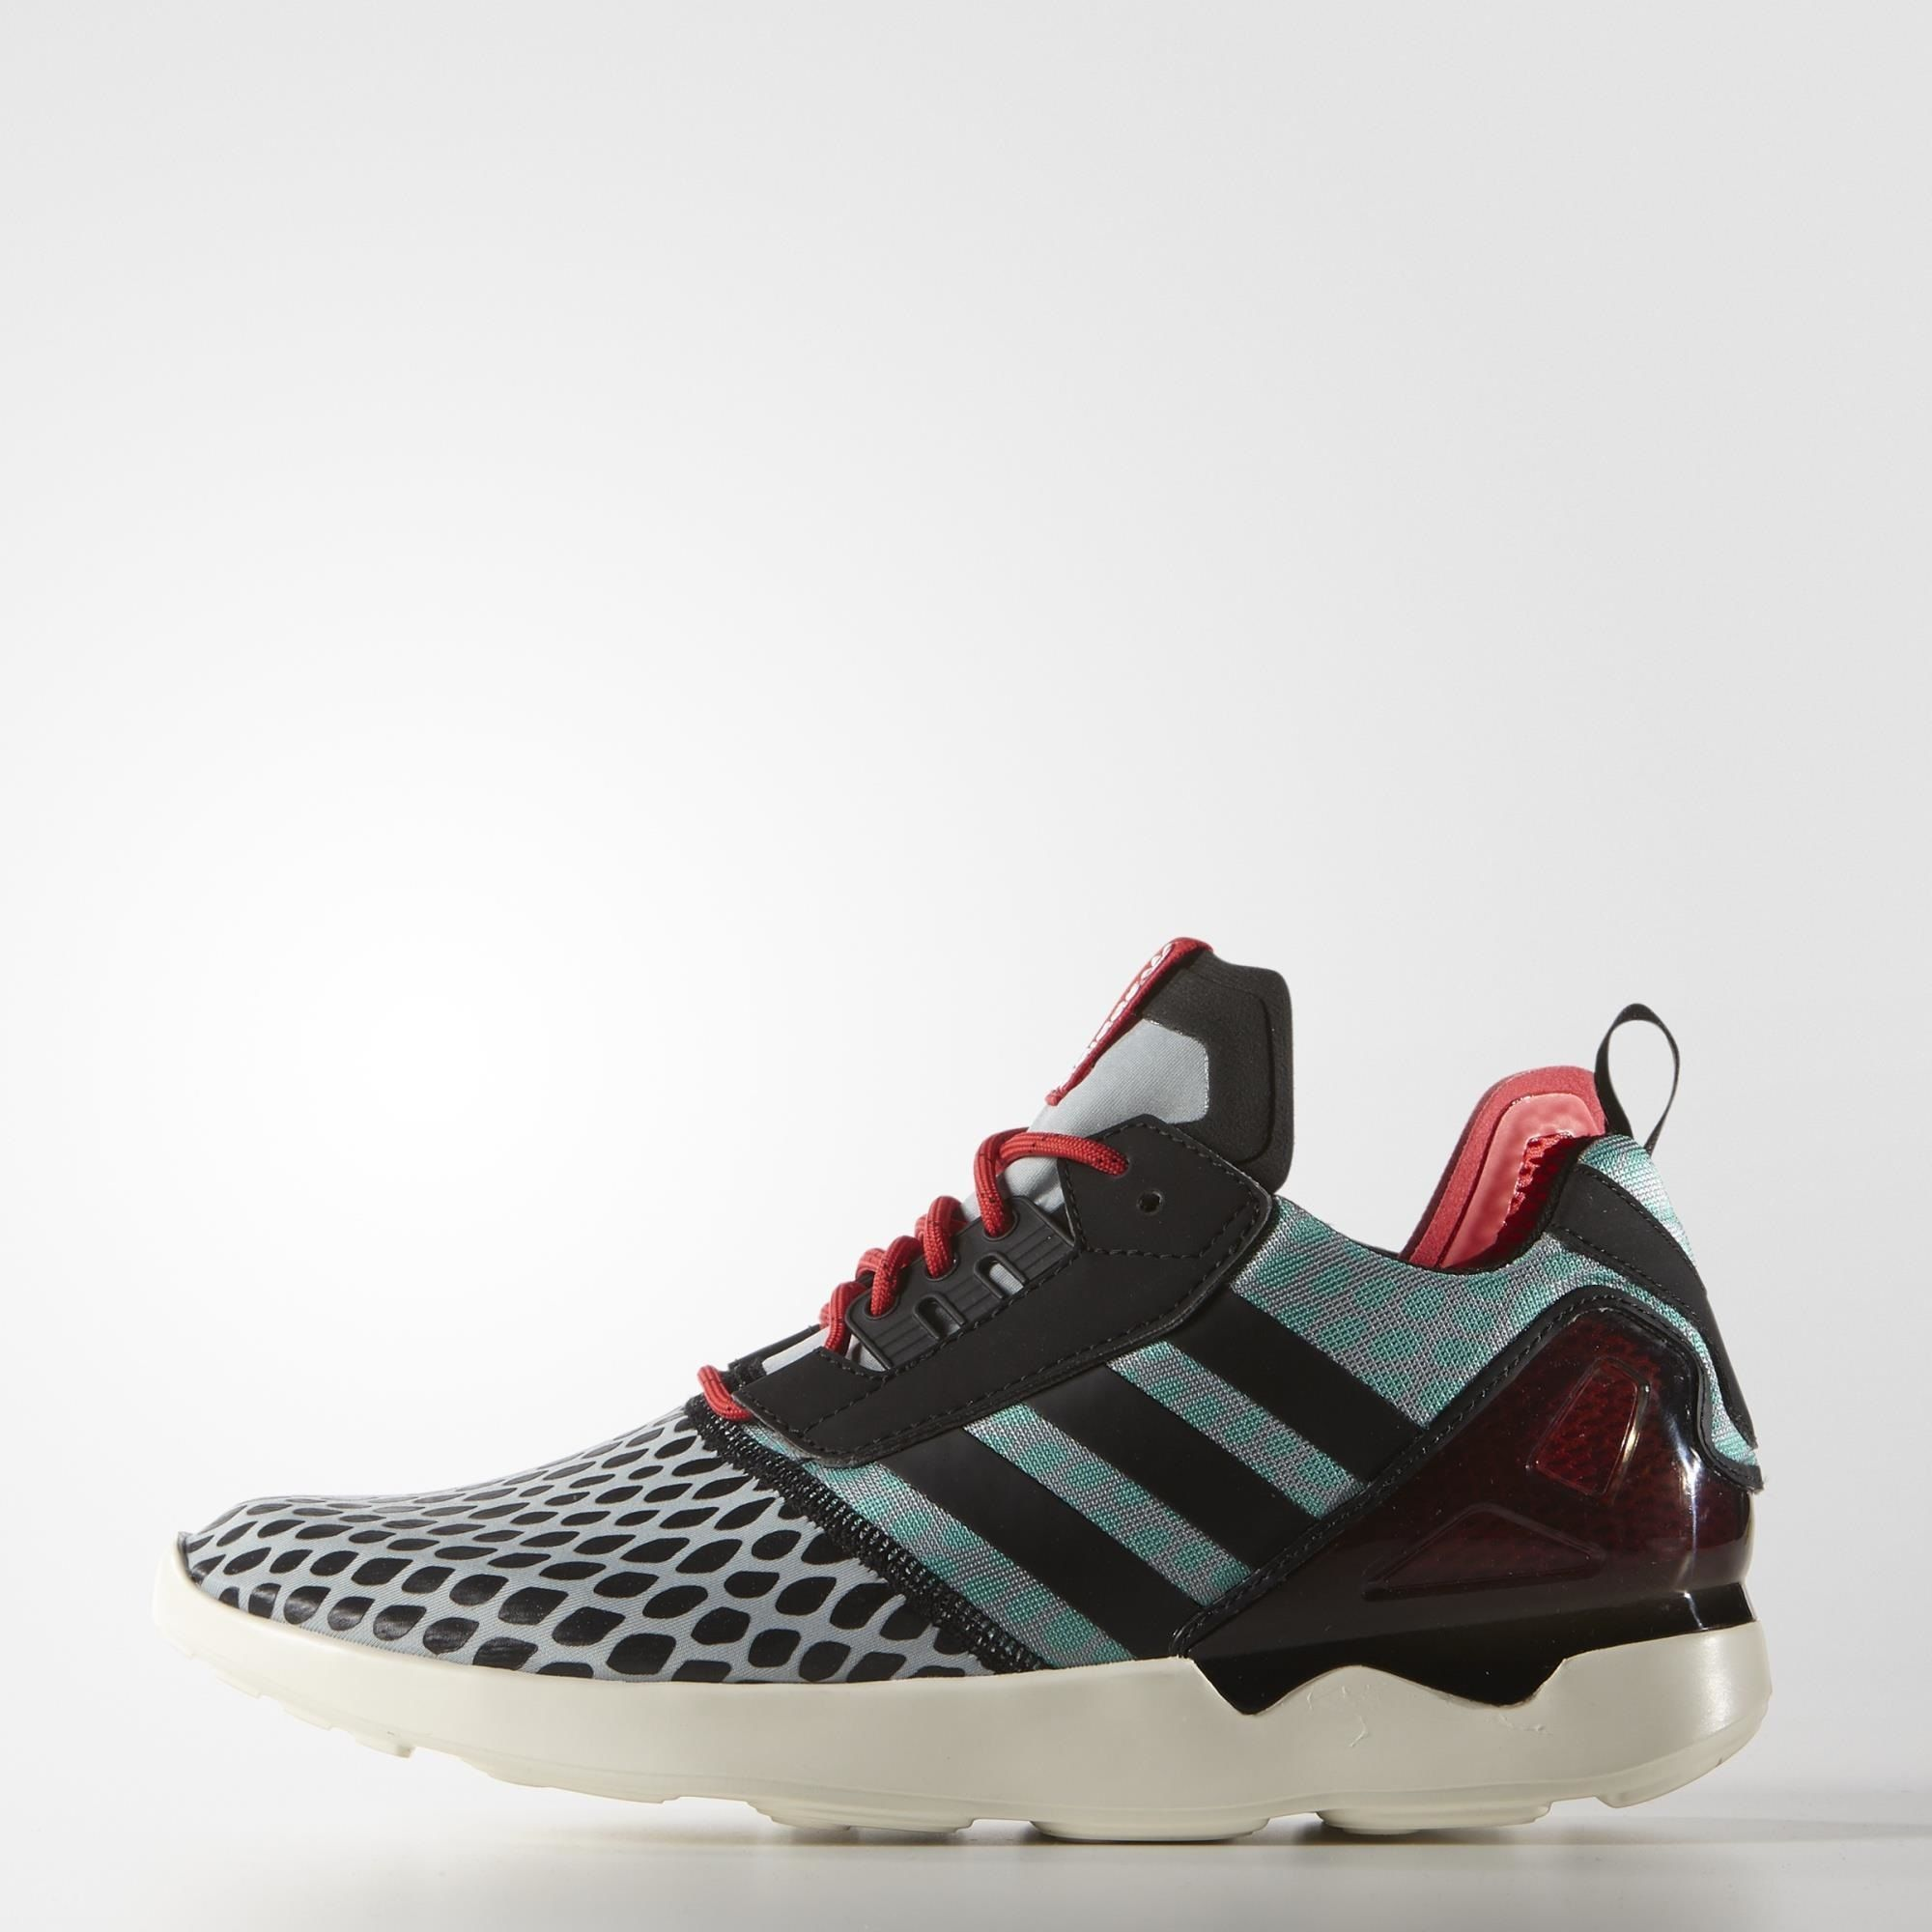 adidas ZX 8000 Boost Shoes - Multicolor | adidas US